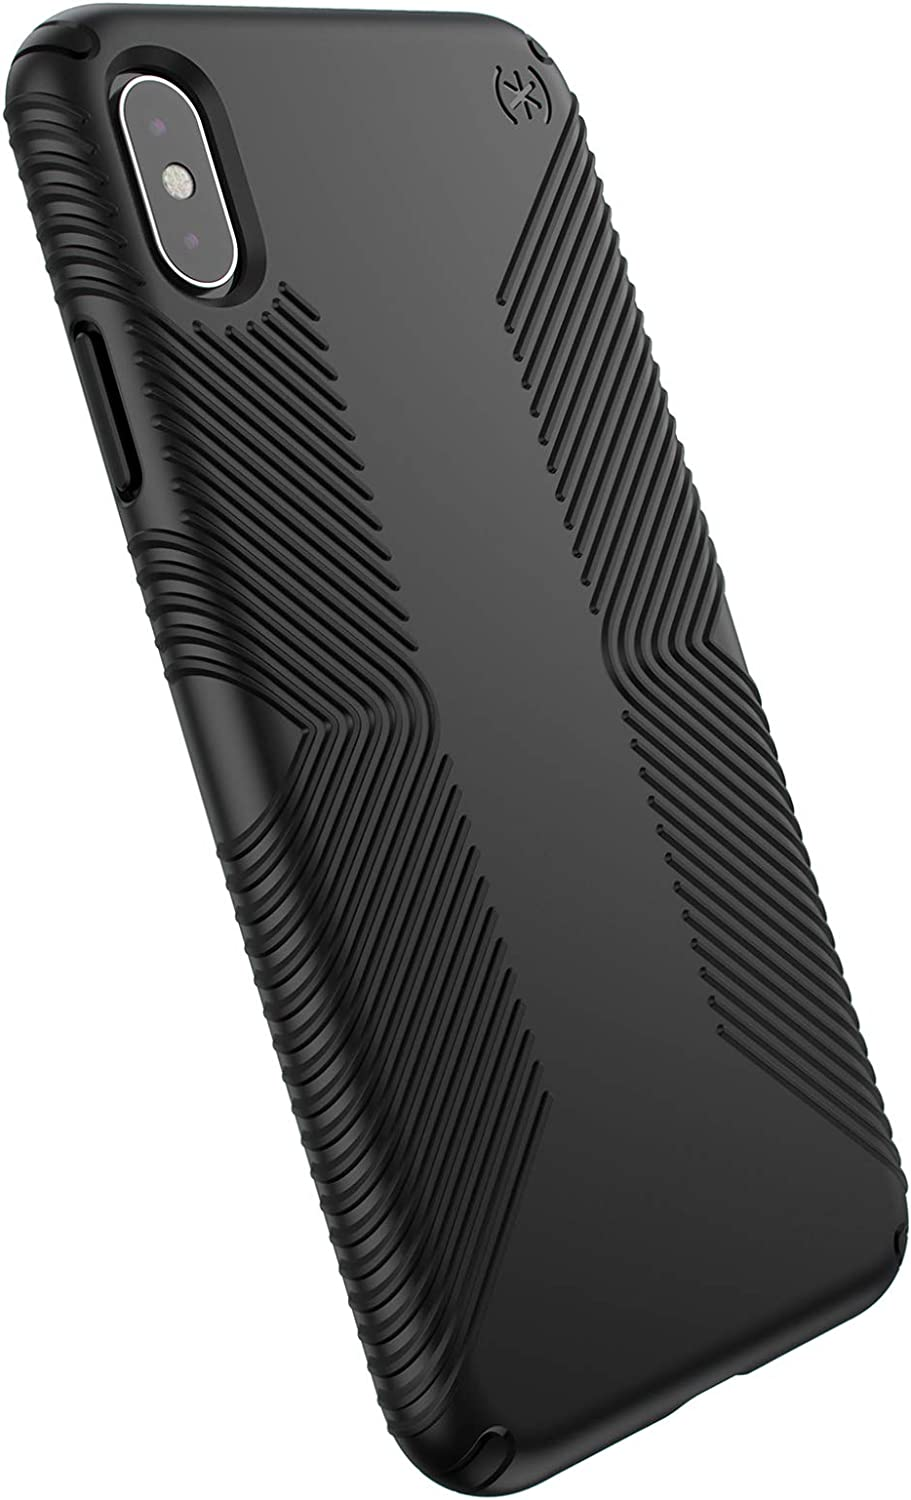 Speck Presidio Glossy Grip Case for Apple iPhone Xs Max Black 120254-7715